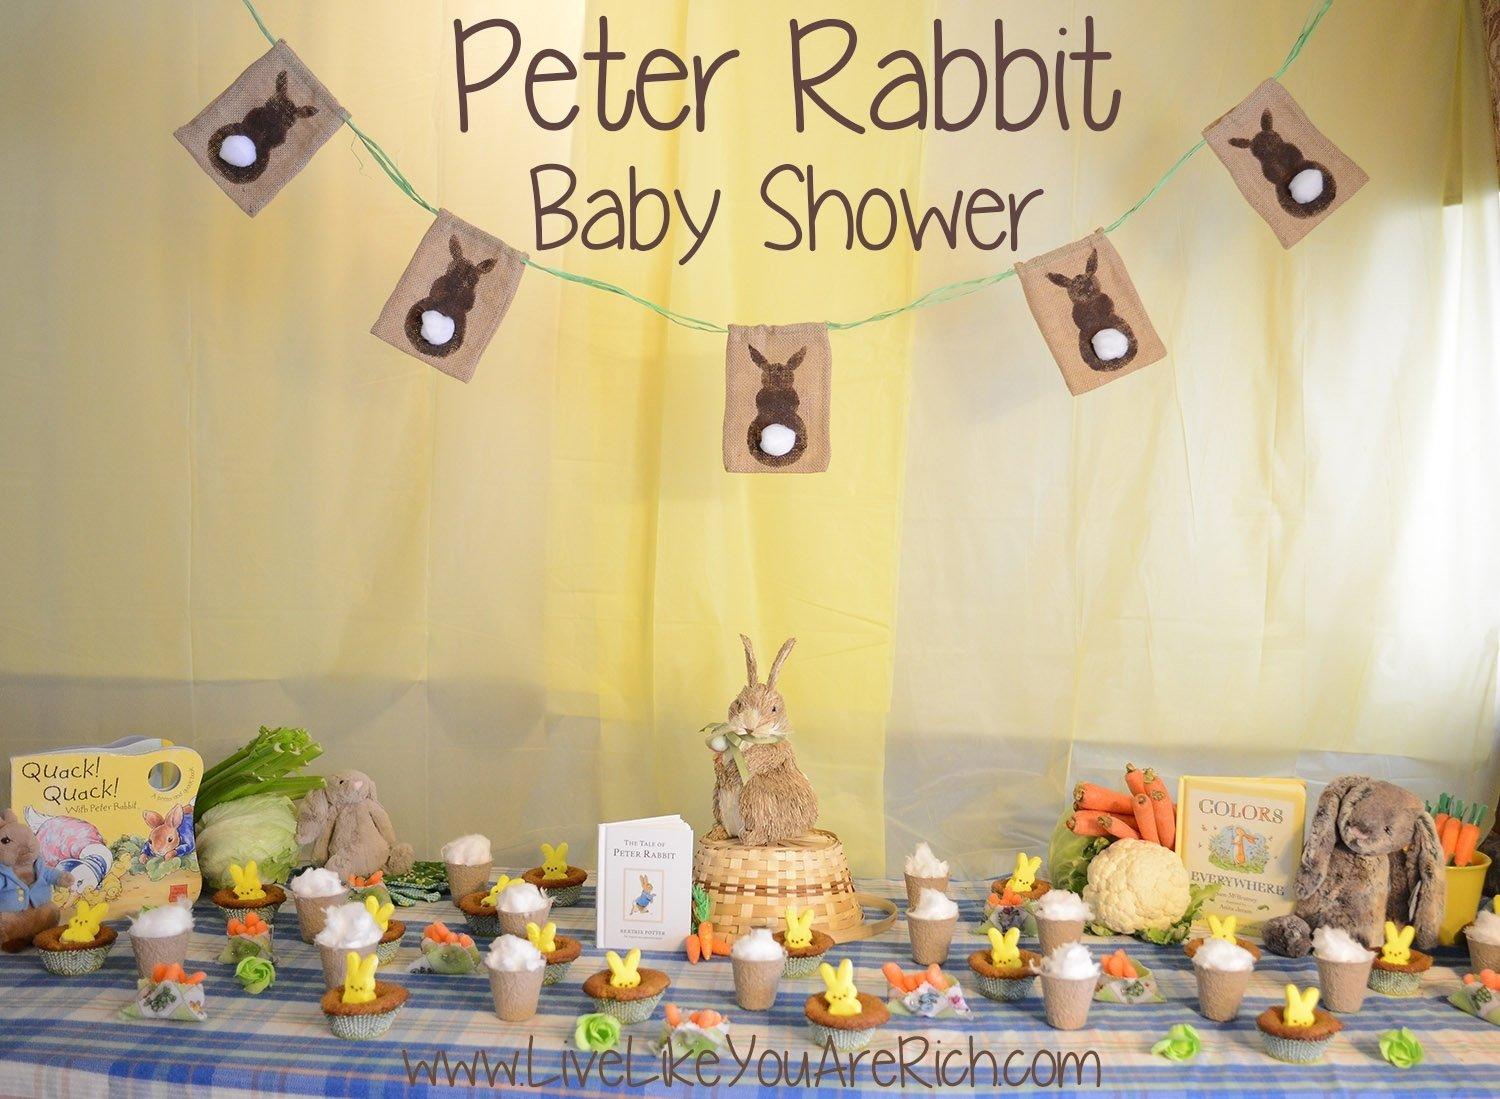 10 Perfect Peter Rabbit Baby Shower Ideas peter rabbit baby shower ideas omega center ideas for baby 2020